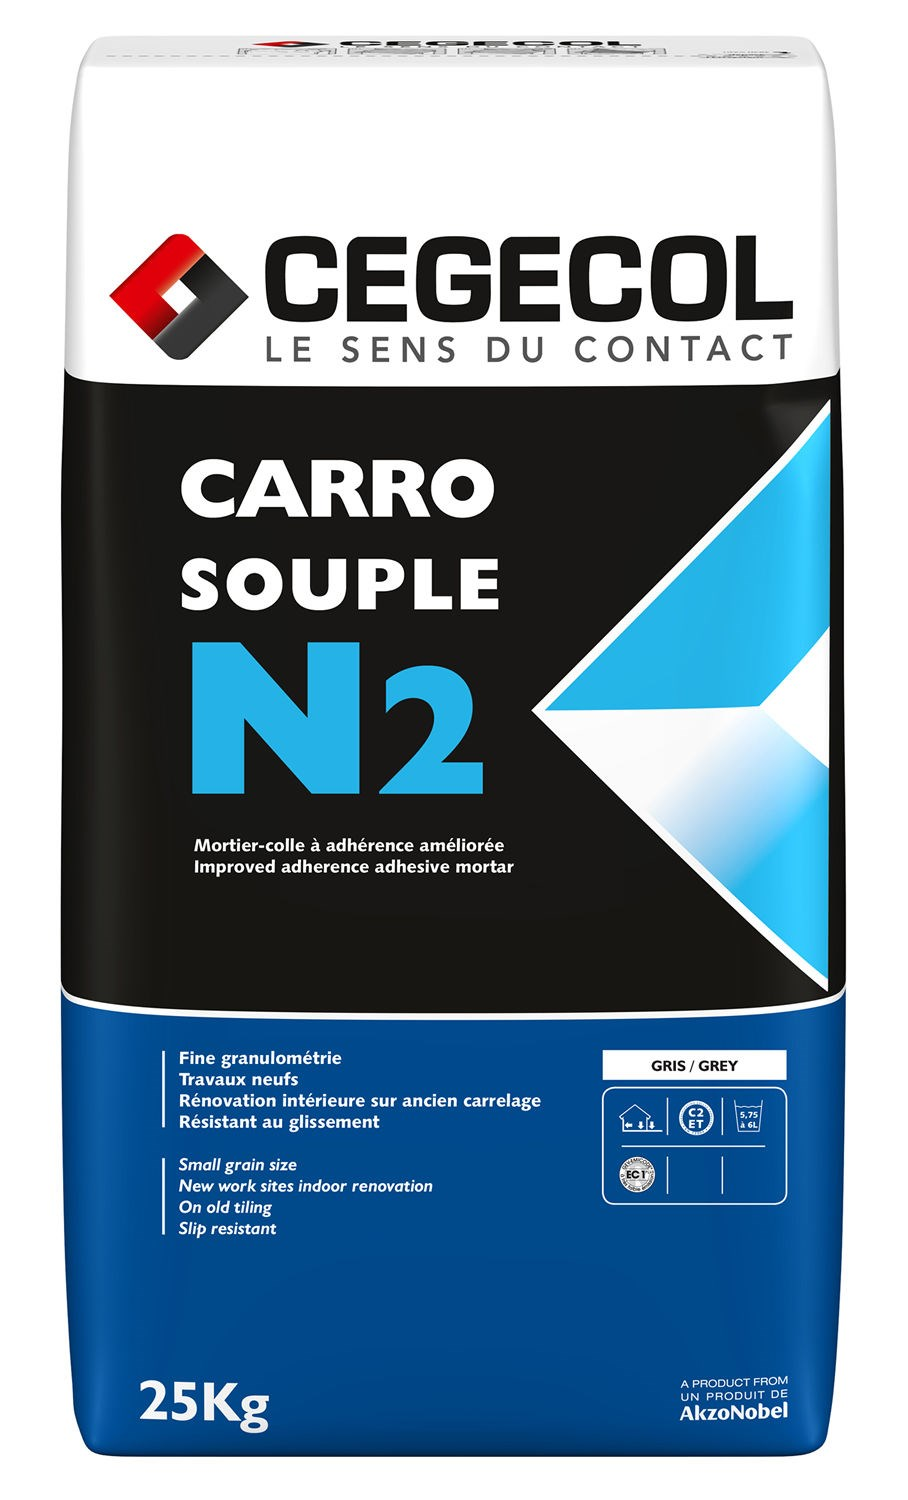 Carreau De Gironde Ancien mortier-colle pour carrelage (c2 et) carrosouple n2